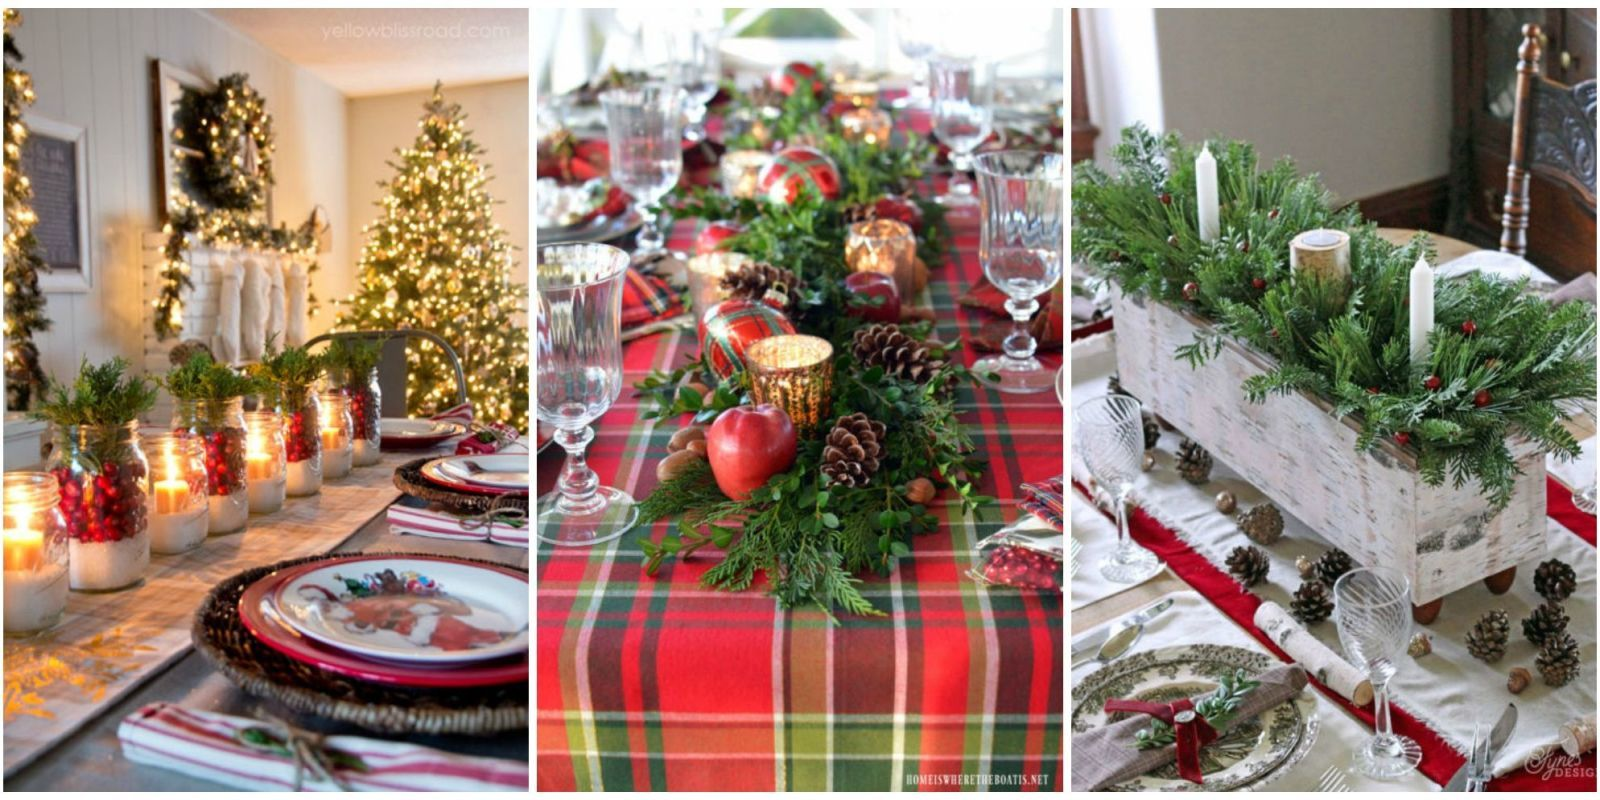 Get inspired to make your holiday table sparkle with these ideas for special decorations and dazzling centerpieces. & 49 Best Christmas Table Settings - Decorations and Centerpiece Ideas ...